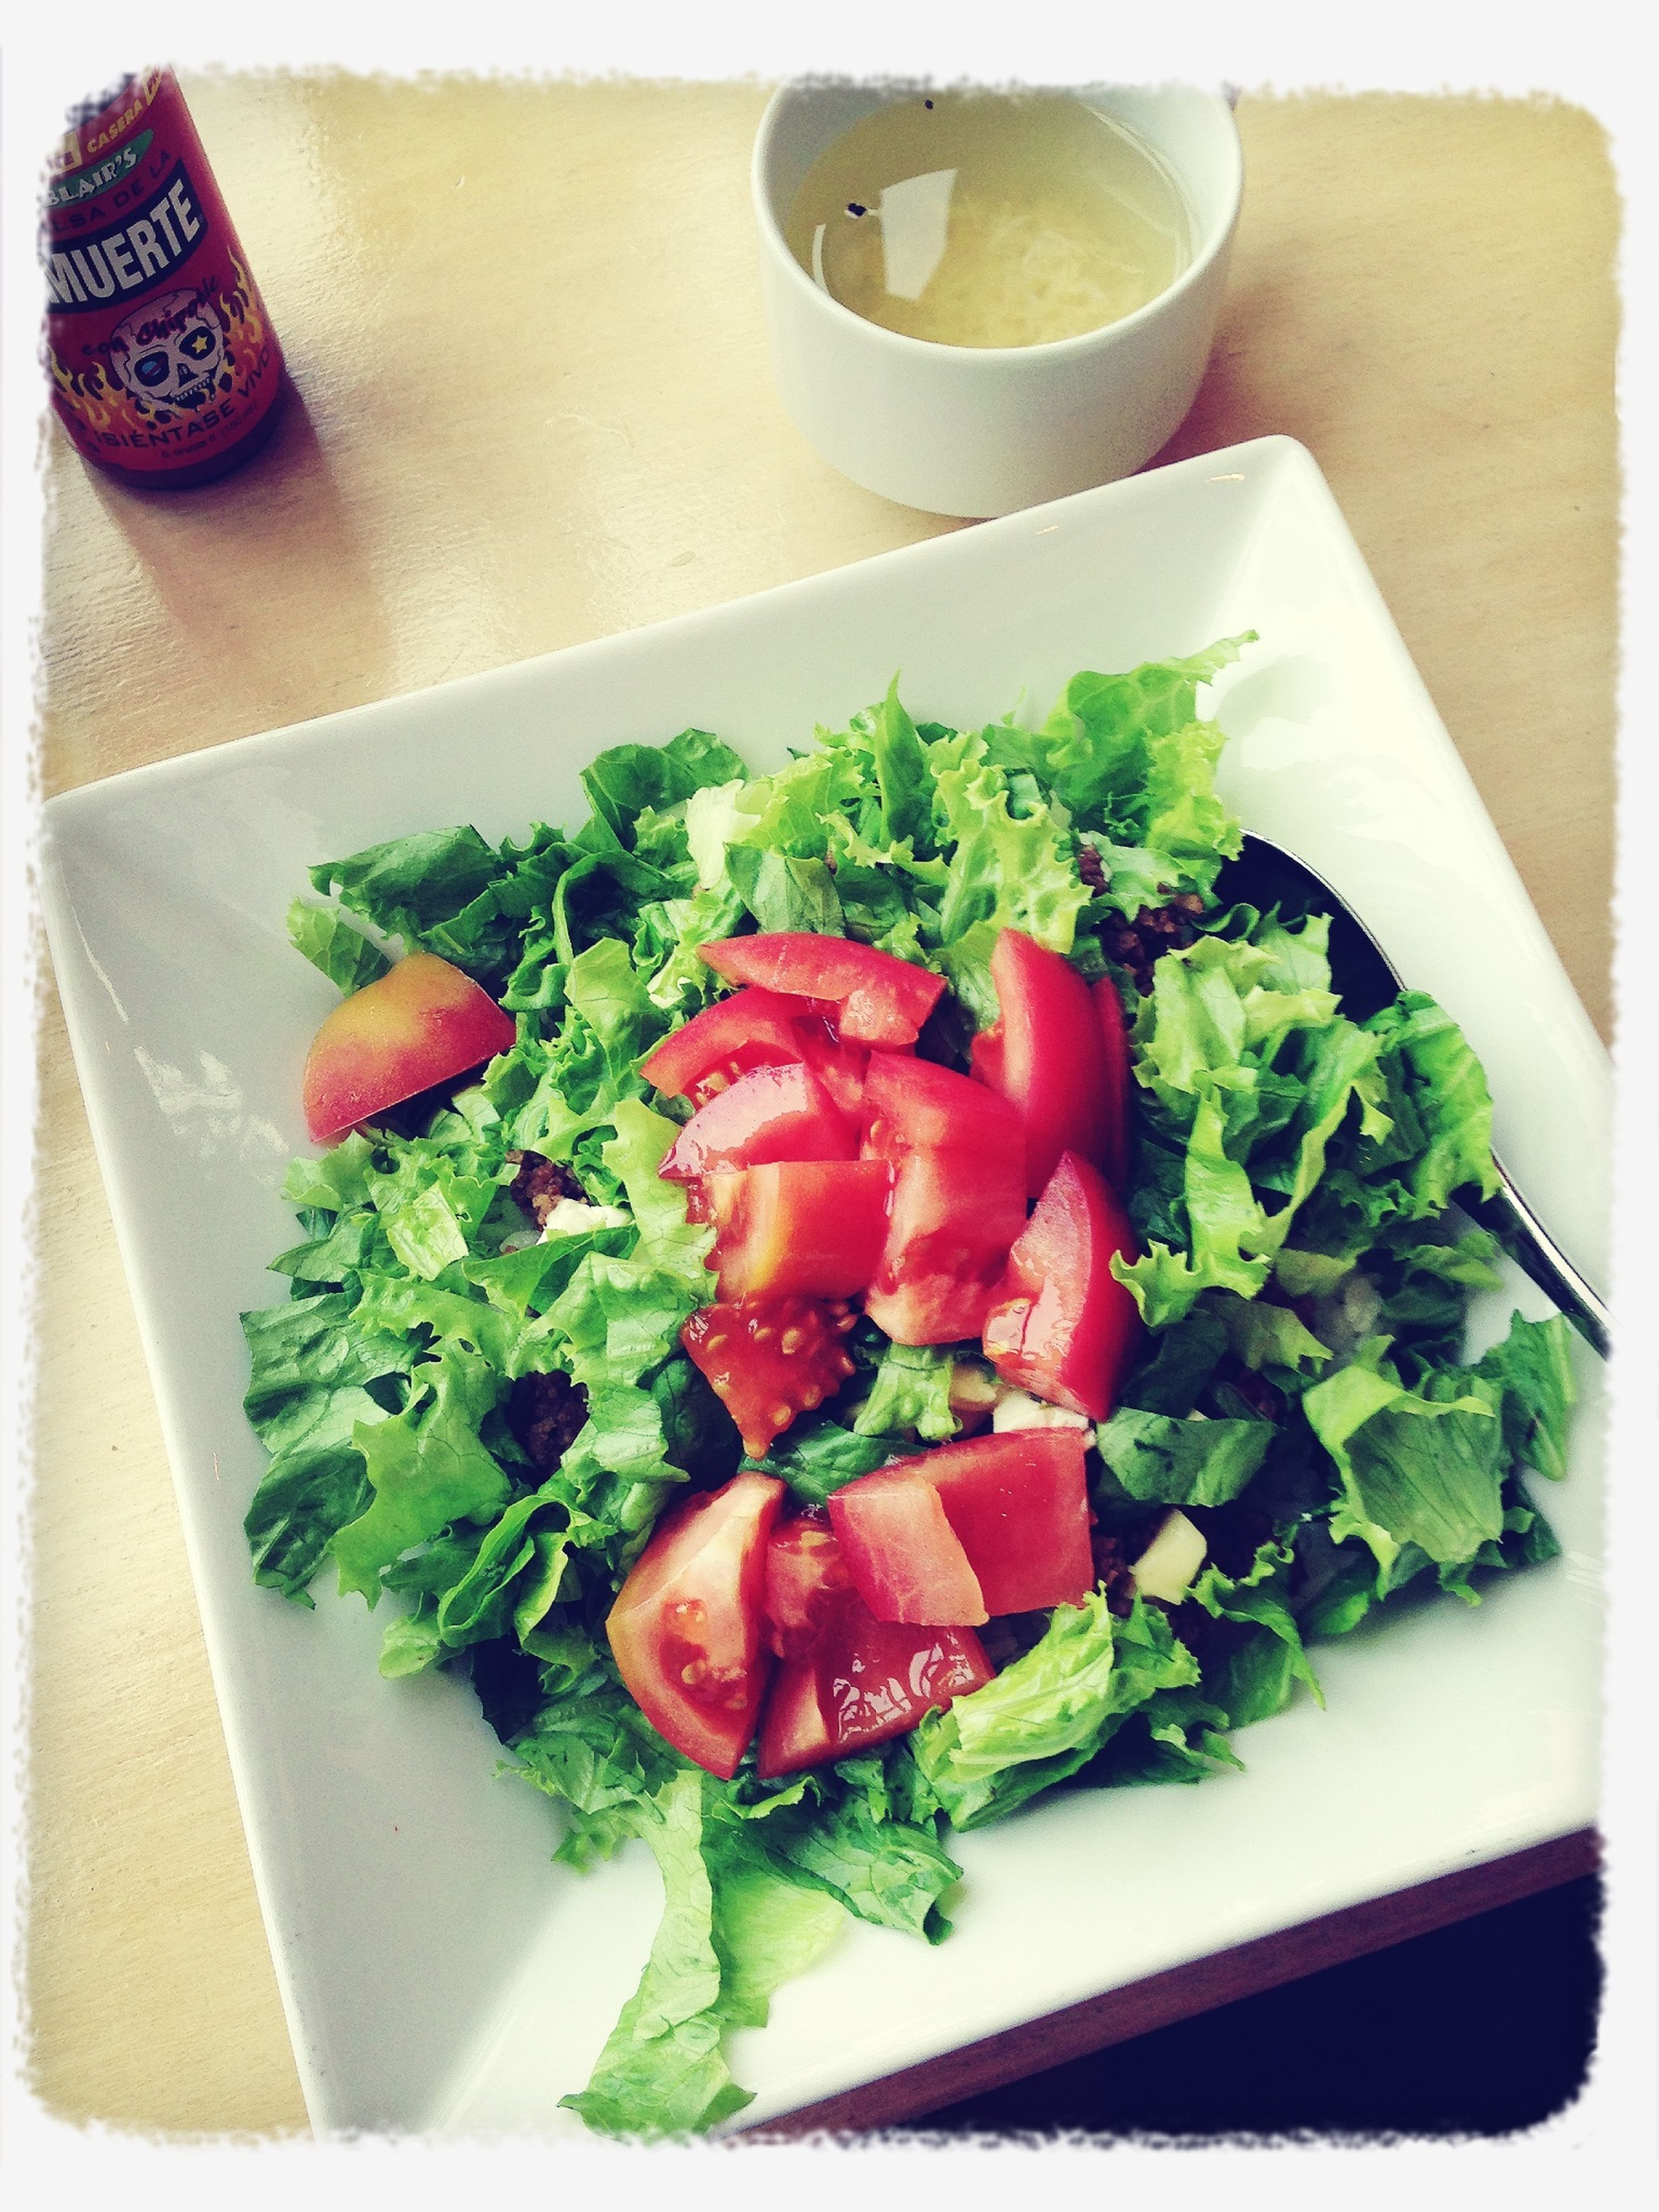 food, food and drink, freshness, indoors, healthy eating, plate, vegetable, still life, salad, ready-to-eat, table, high angle view, tomato, close-up, meal, serving size, indulgence, directly above, slice, served